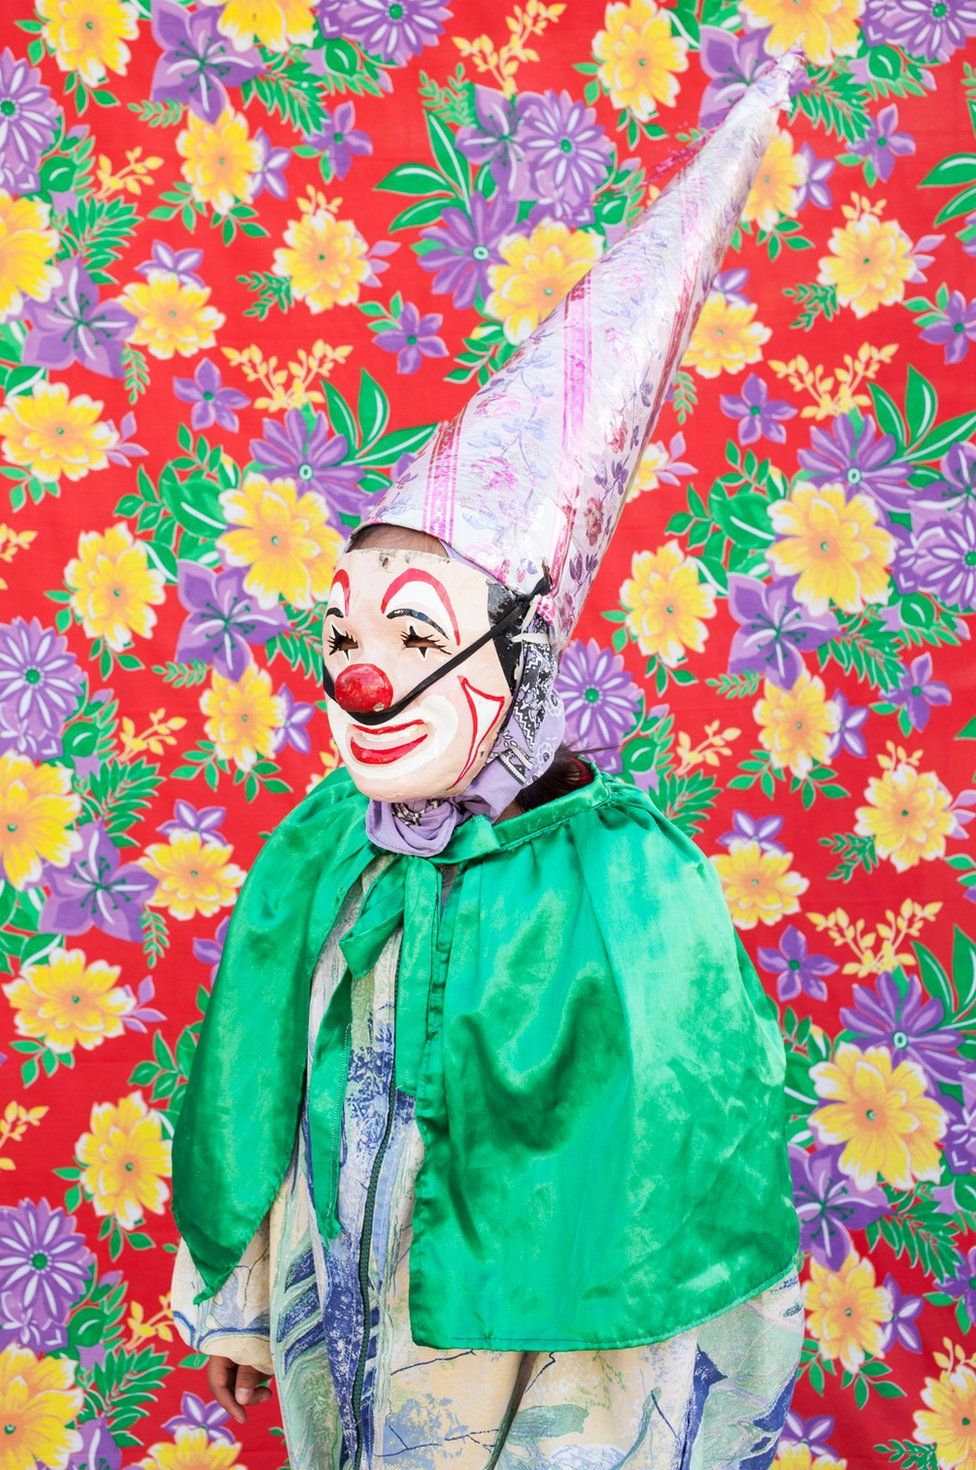 Portrait of clown in front of a patterned background